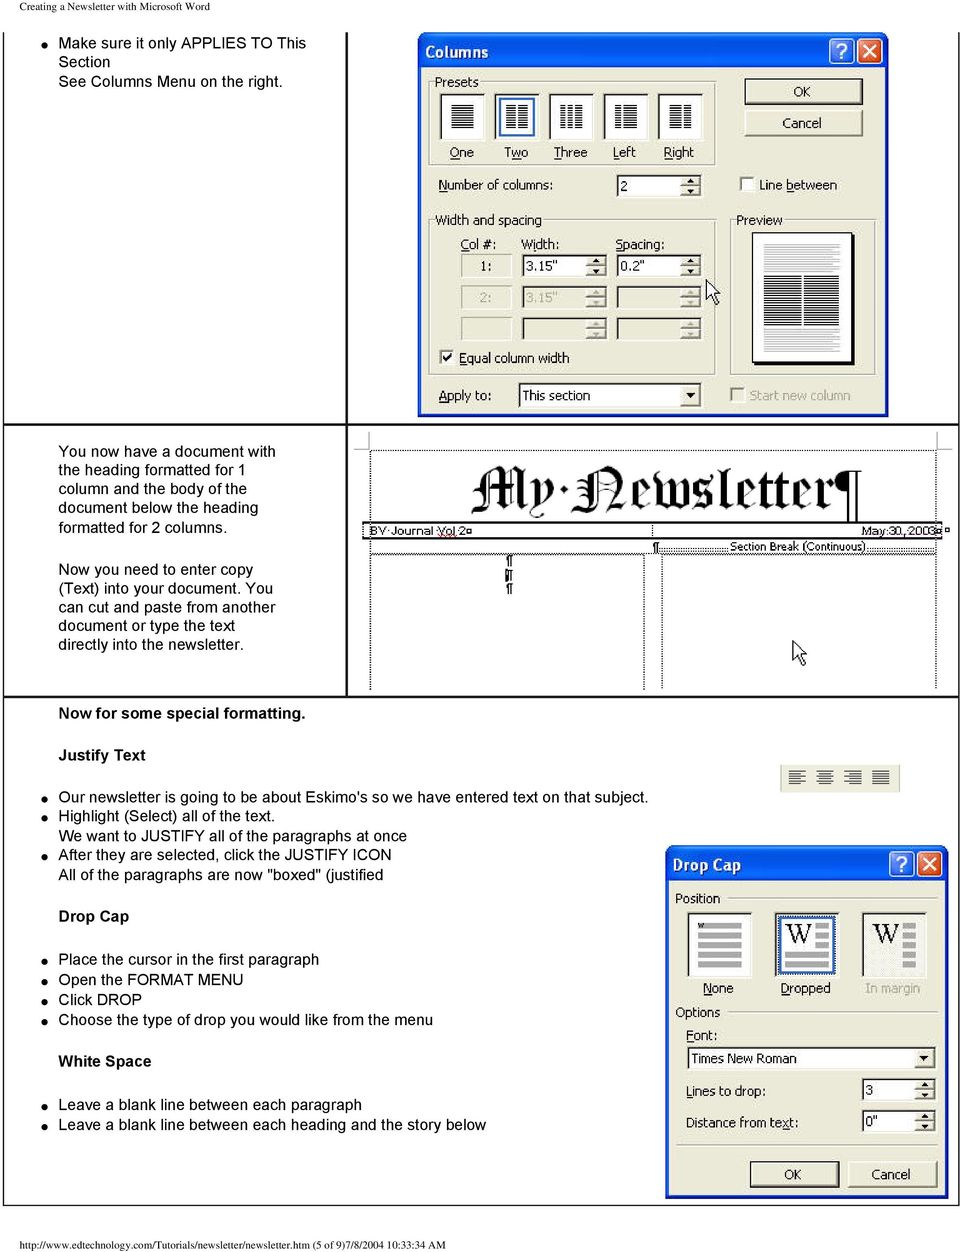 You can cut and paste from another document or type the text directly into the newsletter. Now for some special formatting.